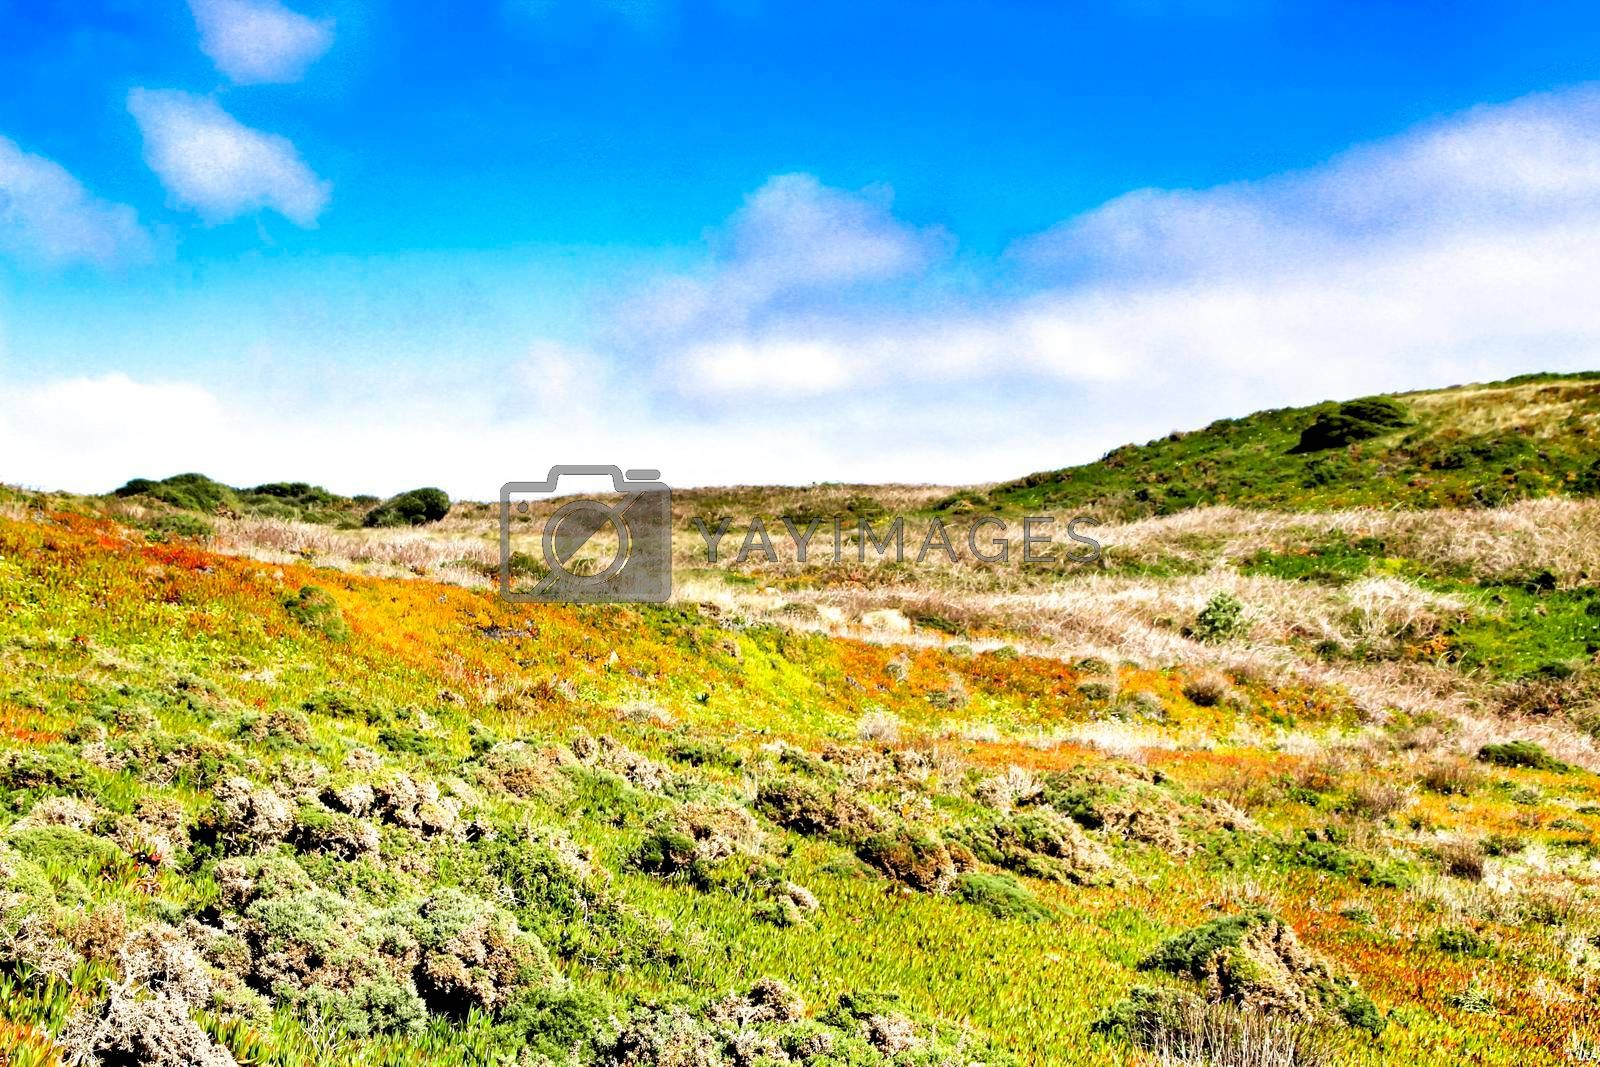 Beautiful landscape of carpobrotus Edulis plants and green vegetation in the mountain of Cabo da Roca in Portugal